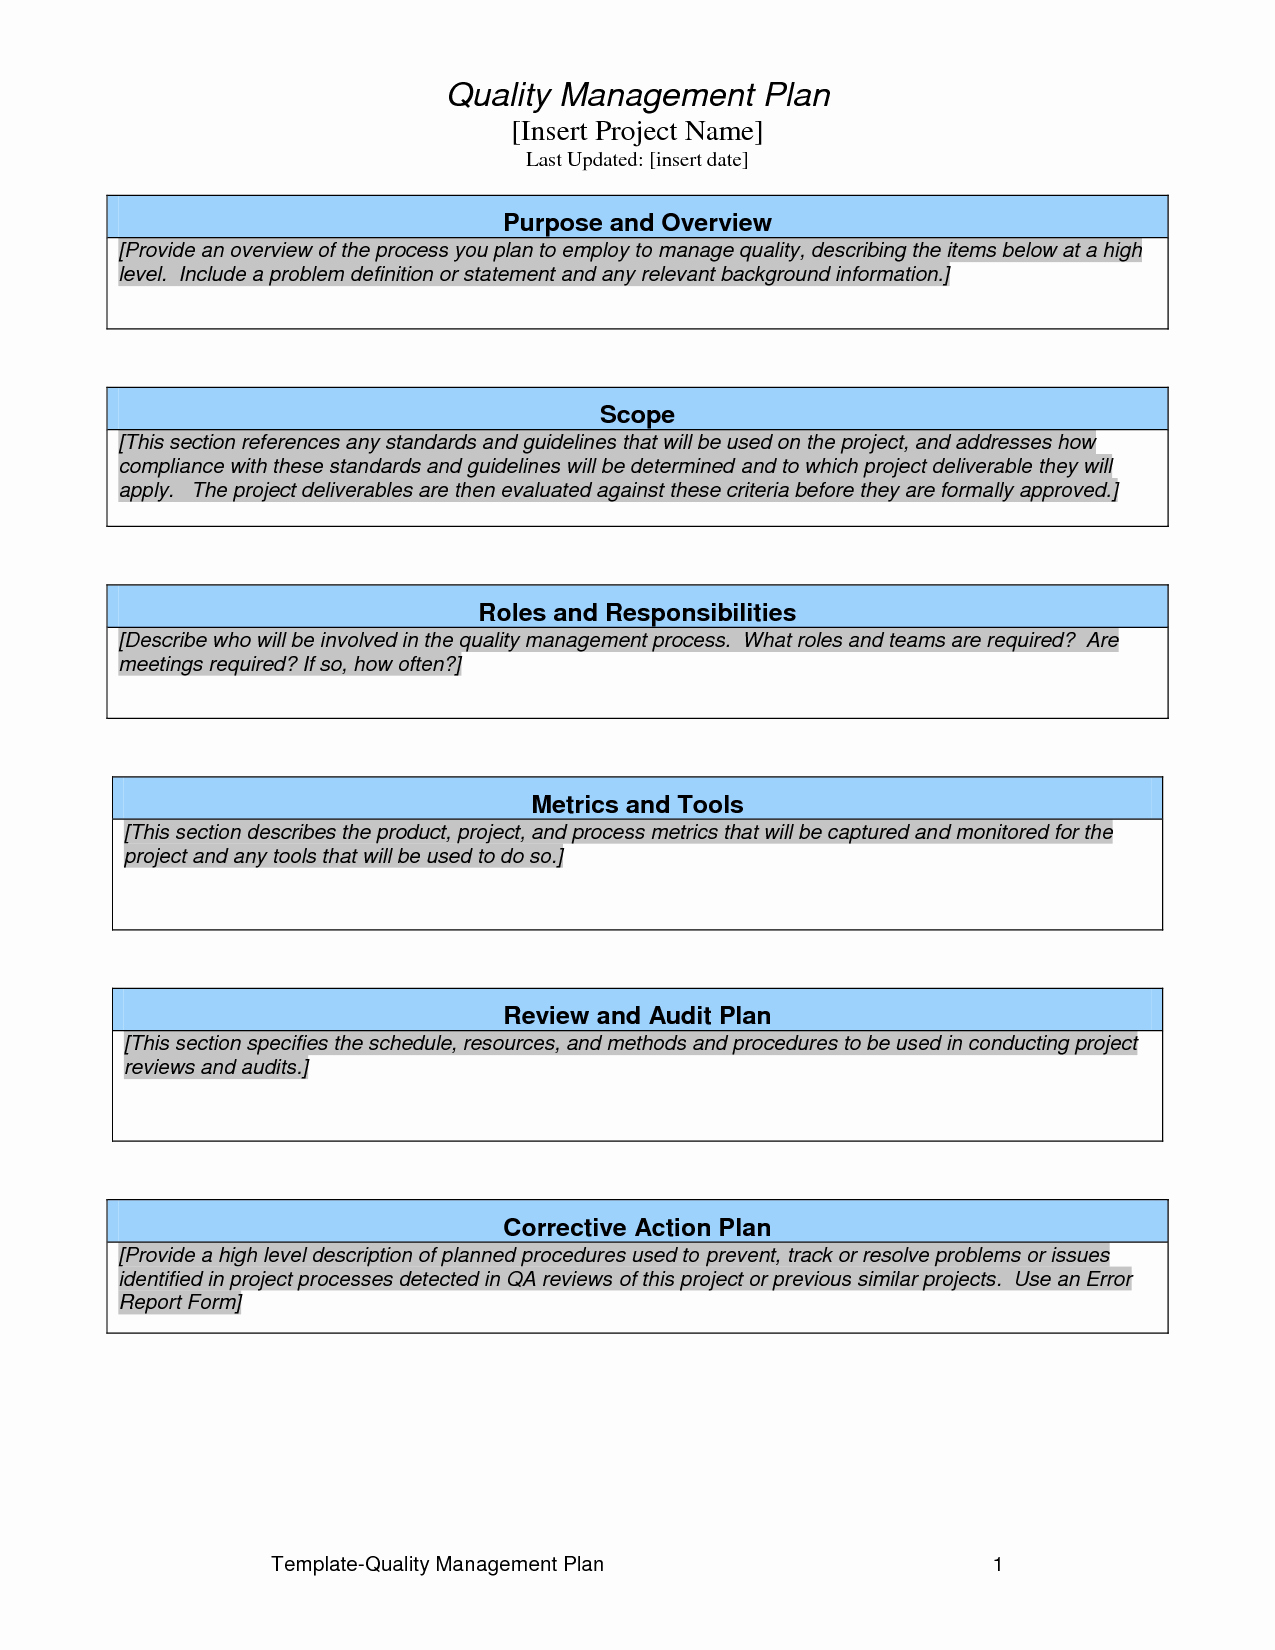 Quality Control Plan Template Awesome Items and Few Behavioral Sample Behavior Plan Management